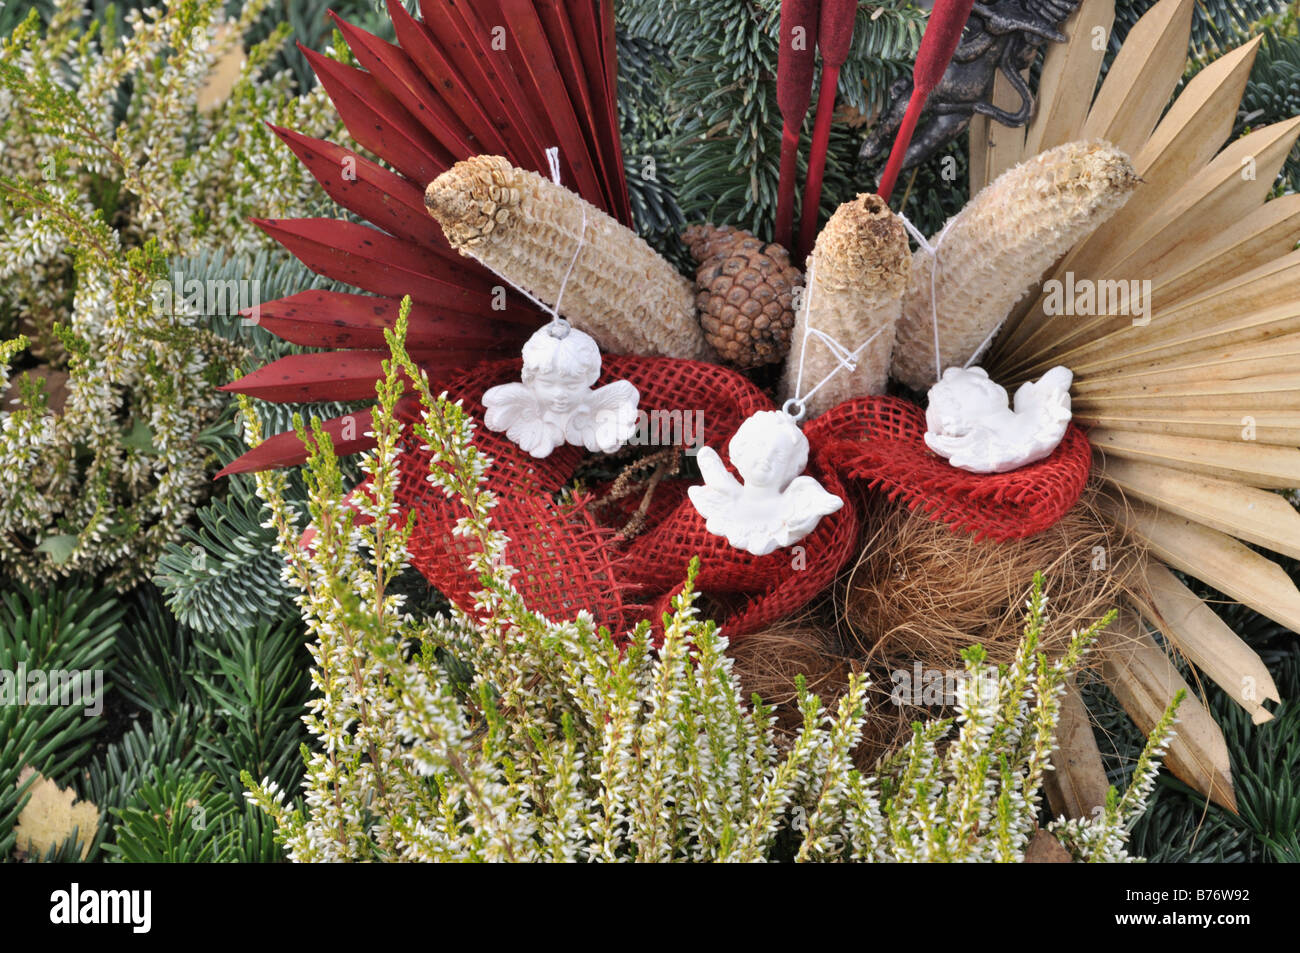 Grave Decoration Grave Decoration With Dyed Plant Parts Stock Photo Royalty Free